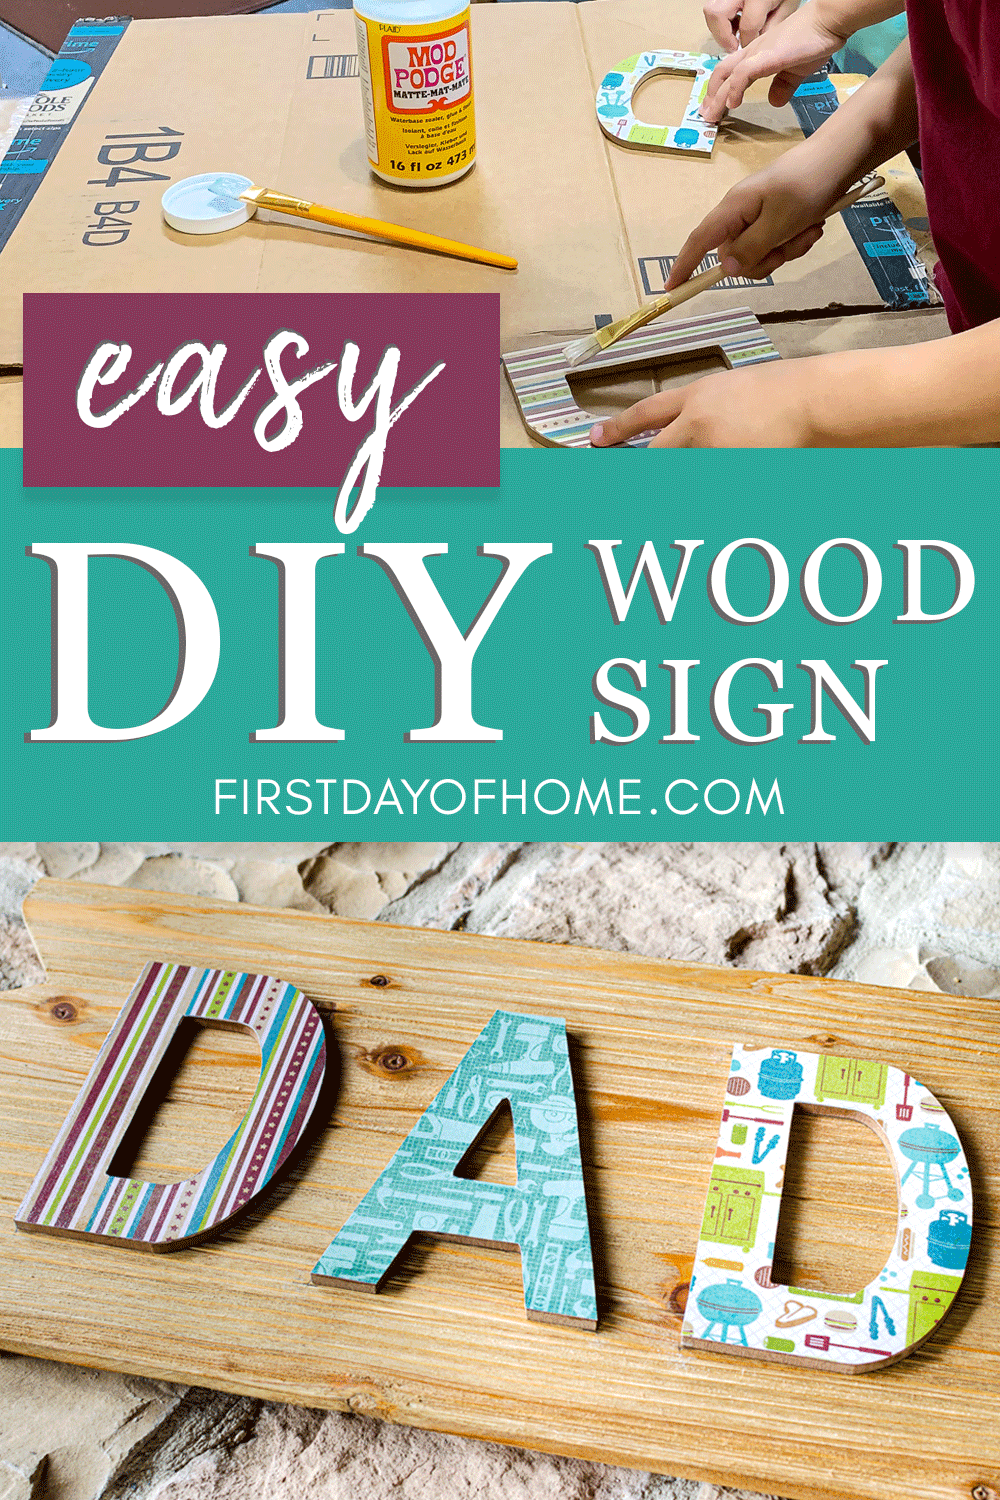 How to Make Decoupage Wood Signs (The Easy Way)